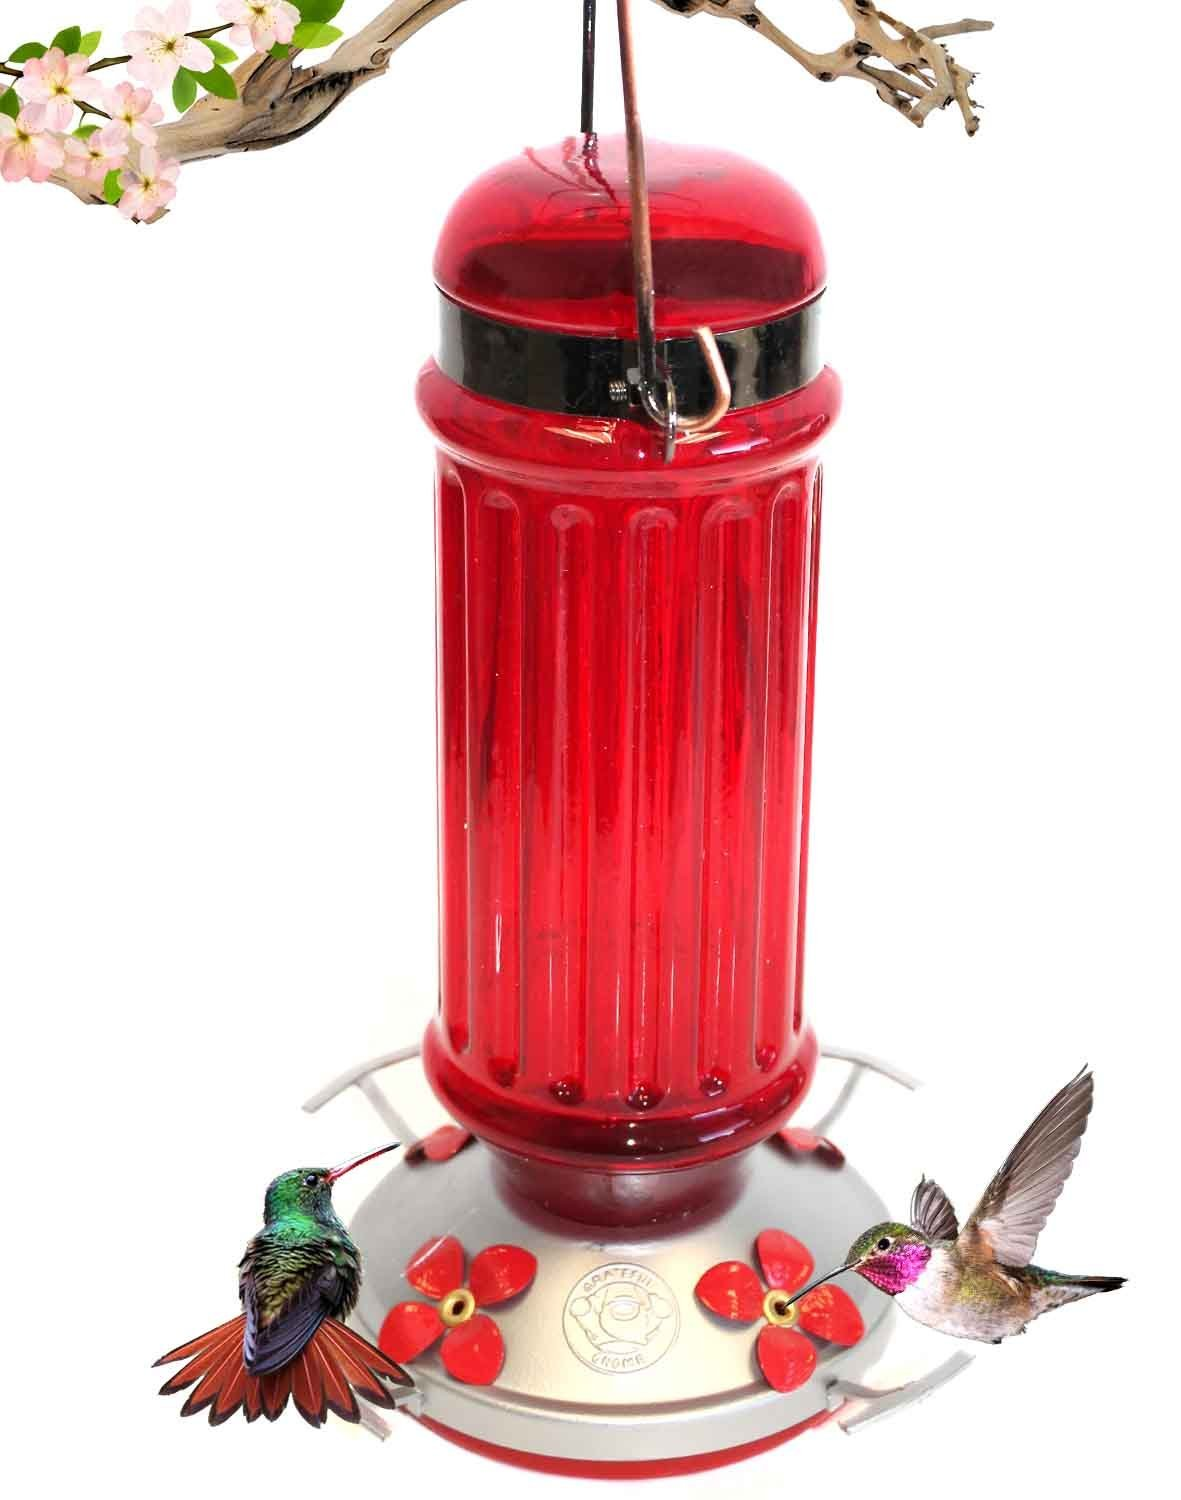 Grateful Gnome - Hummingbird Feeder - Red Glass Bottle with Metal Clamp Hanger - 28 Fluid Ounces